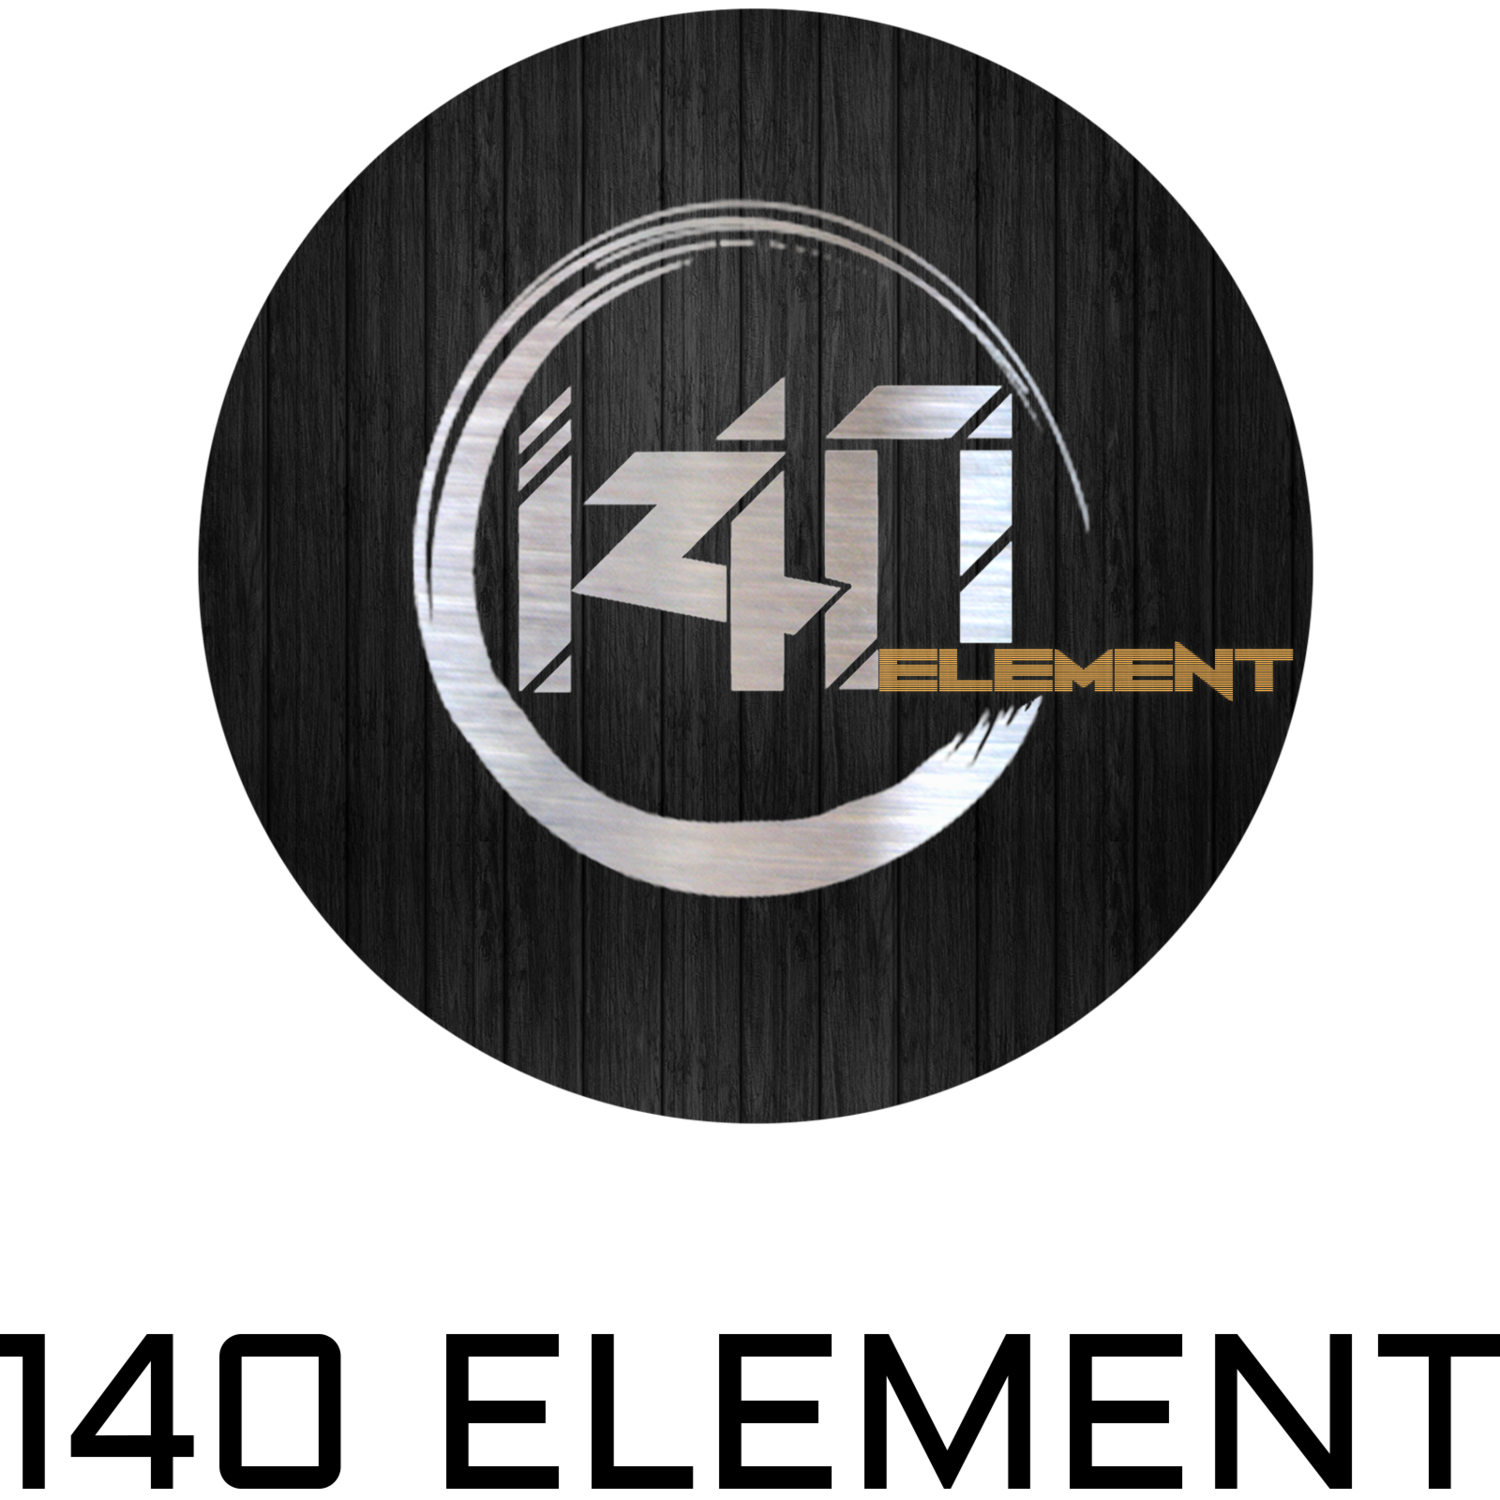 140 ELEMENT | Award Winning Creative Agency for storytelling, video productions, branding content, 3D render, animation,